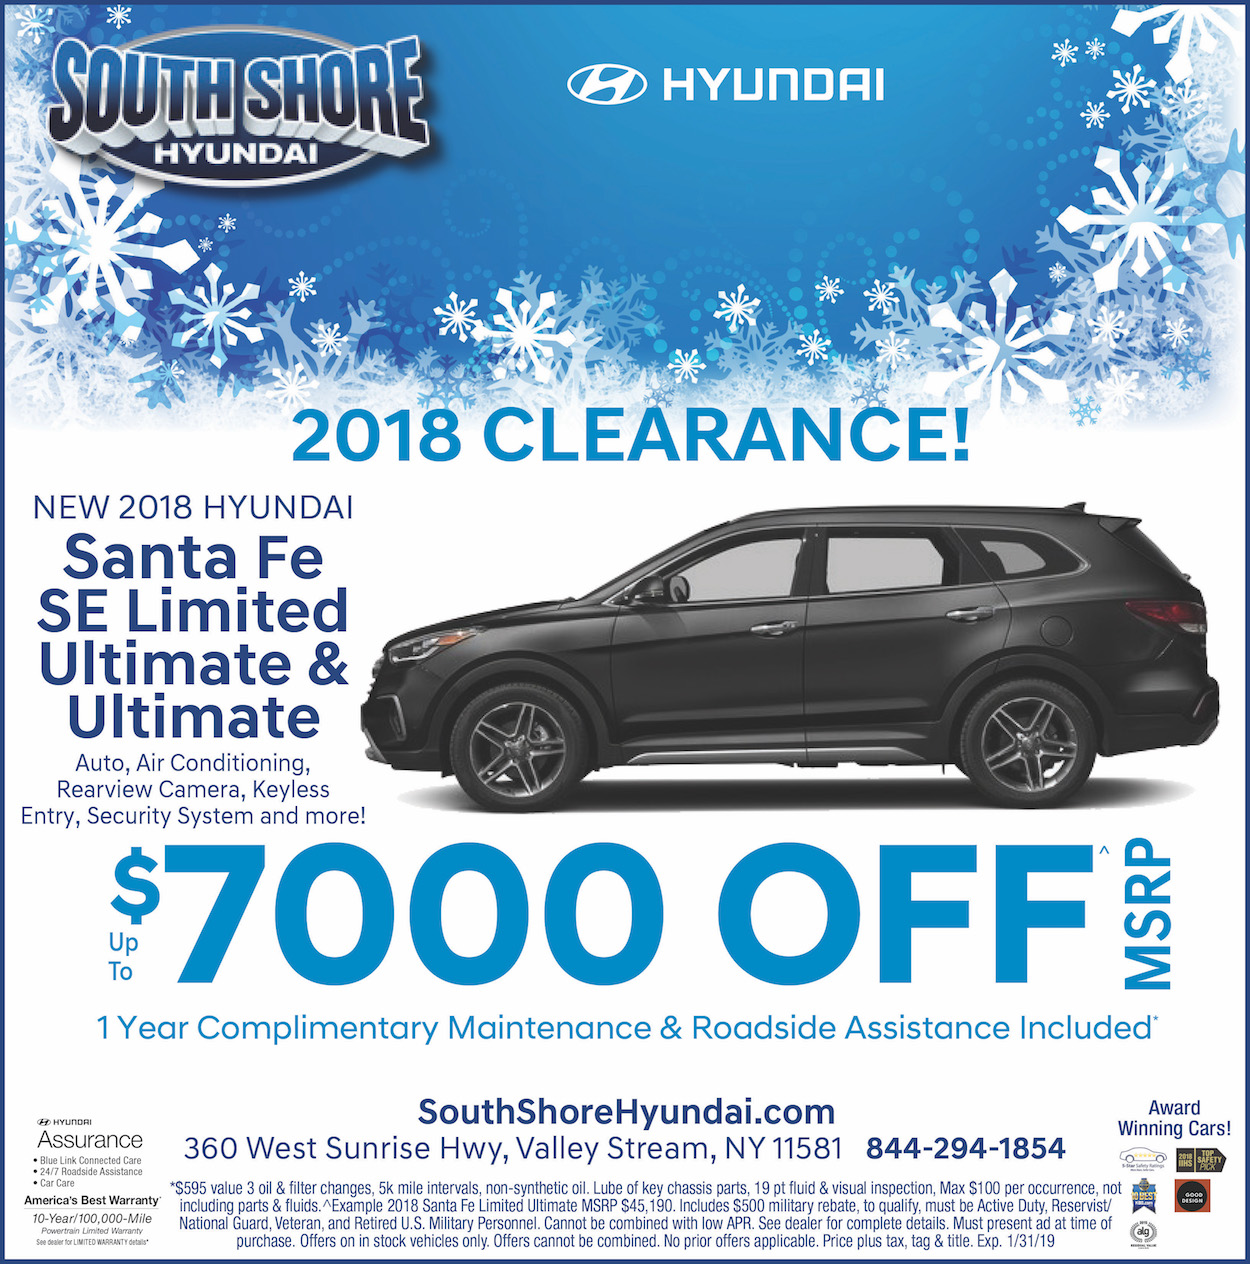 hyundai 2018 clearance offer